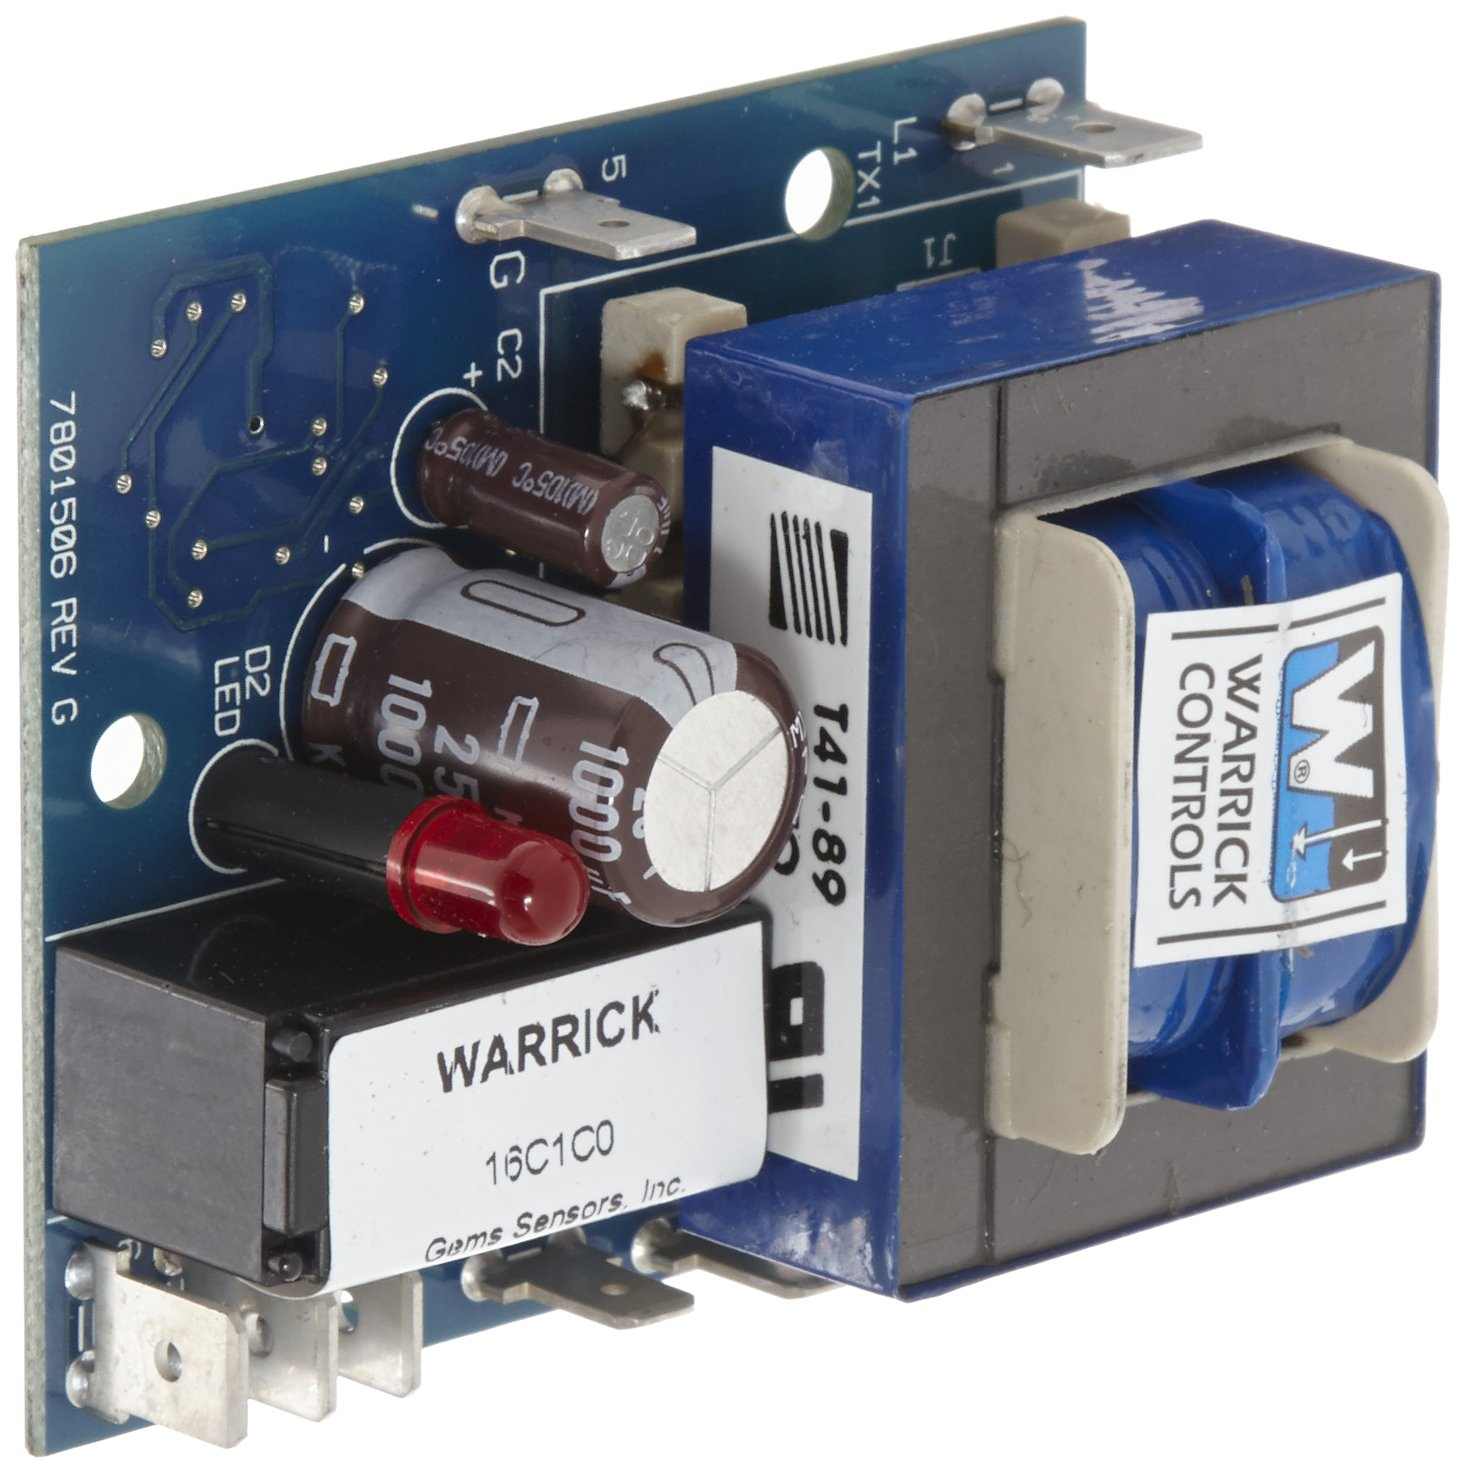 Warrick 16C1C0 General Purpose Open Circuit Board Control with Screw Mount Standoff, 26K ohms Direct Sensitivity, 120 VAC Voltage